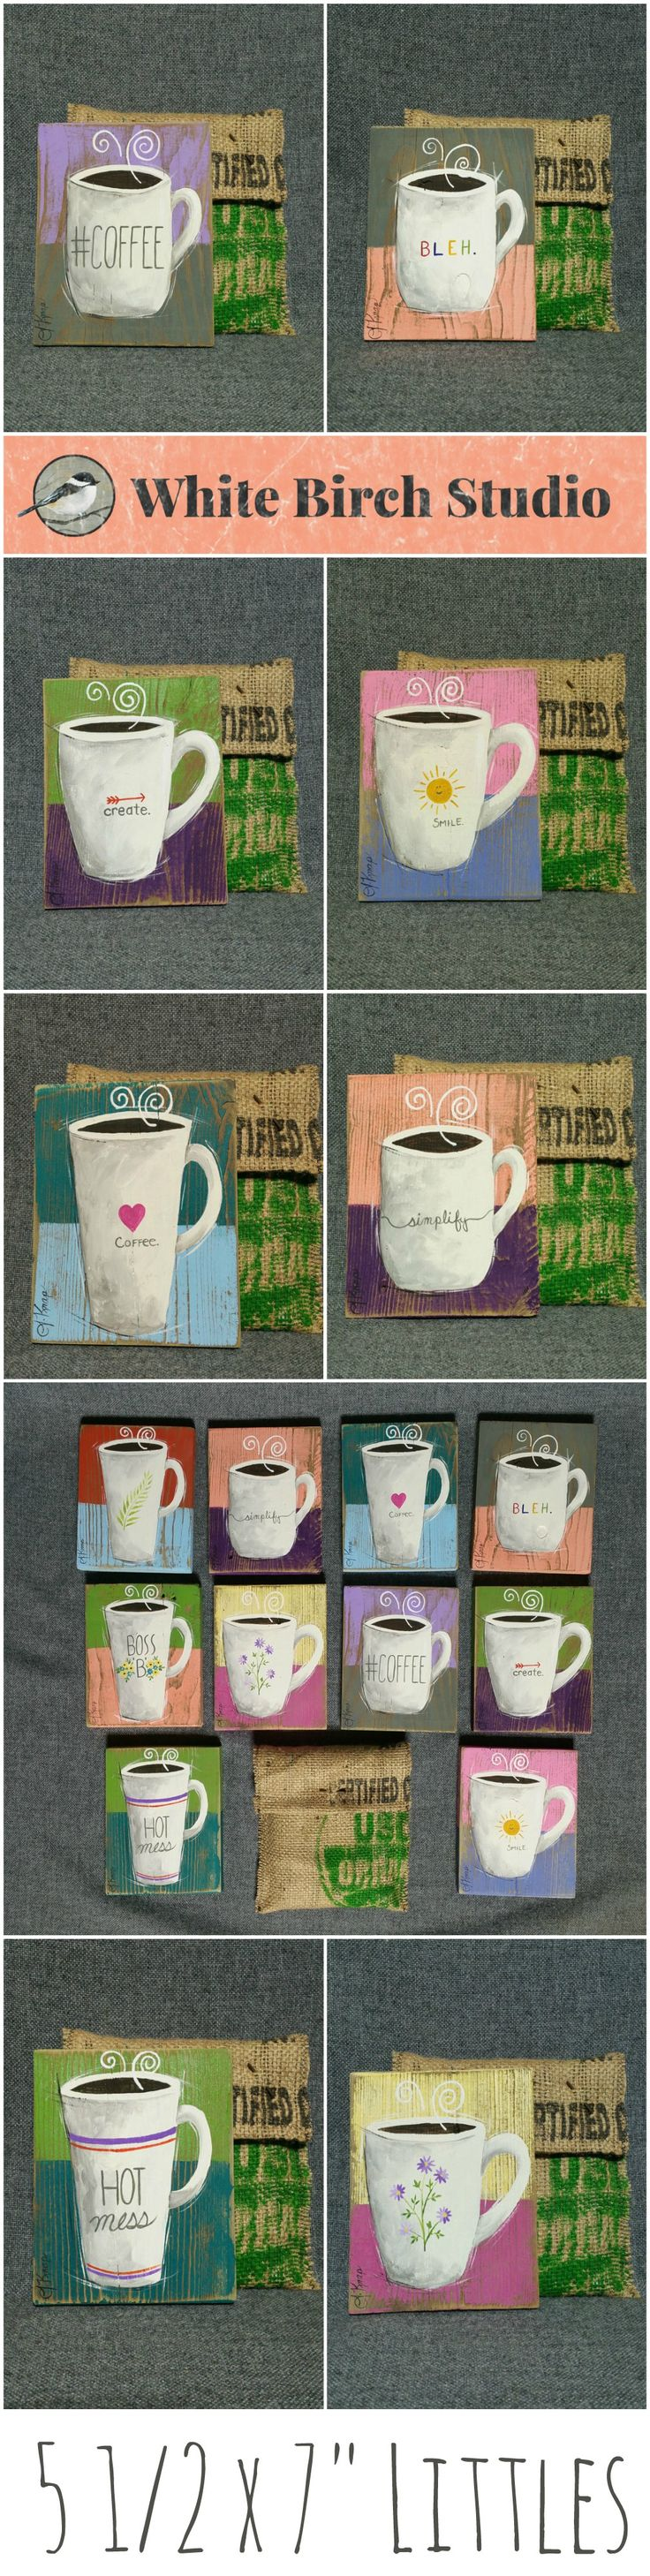 "FREE SHIPPING - United States Only  Original Small Coffee Acrylic painting on reclaimed wood 5 1/2"" x 7"" tall  ATTENTION Coffee Lovers! Set a unique mug painting by your Keurig, on your desk by your computer or hang as a group collection vertically or horizontally. Each piece is hand painted and sanded for an aged appearance. Each piece comes in a hand sewn bag made from recycled coffee bean sacks and the enclosure is an old nail."